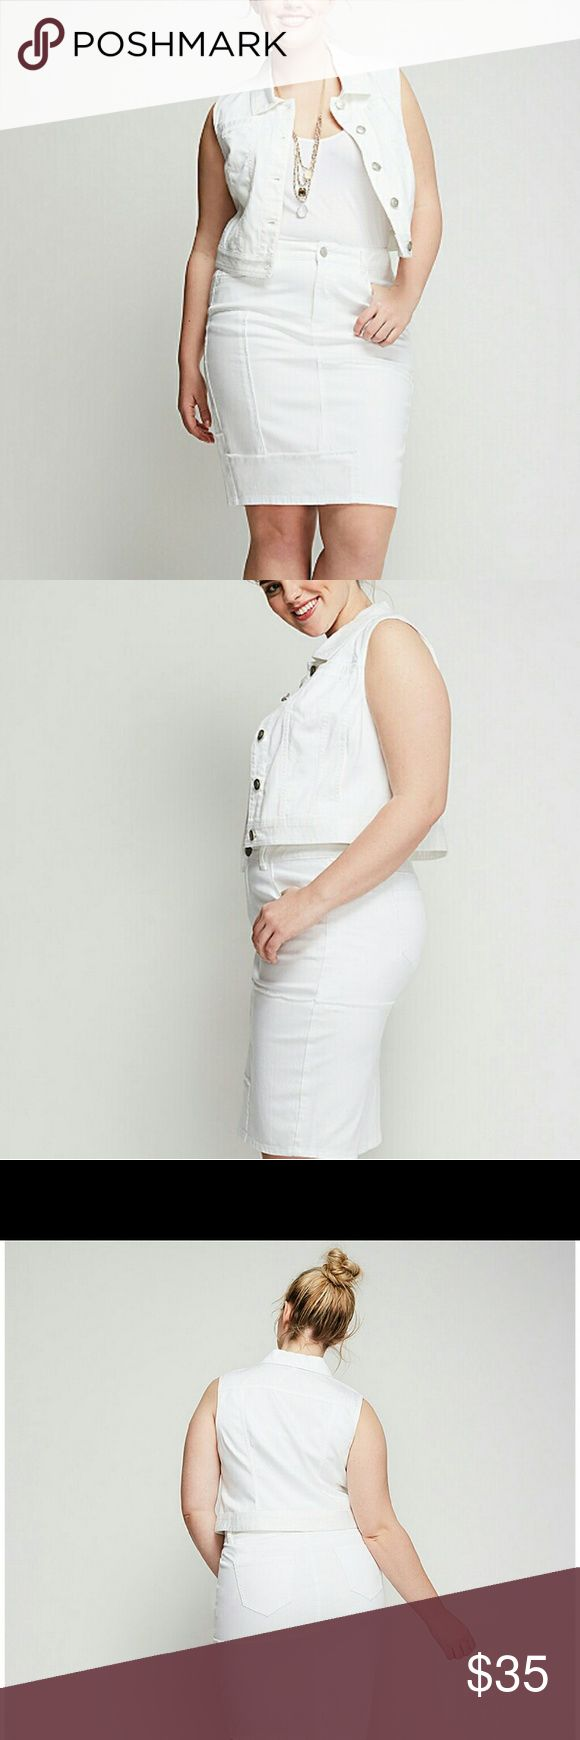 Ultra light white denim vest lane bryant 16 18 NWT Perfect for layering over tanks and dresses, or long sleeves paired with a scarf! Sizes 16 and 18 available Lane Bryant Jackets & Coats Vests